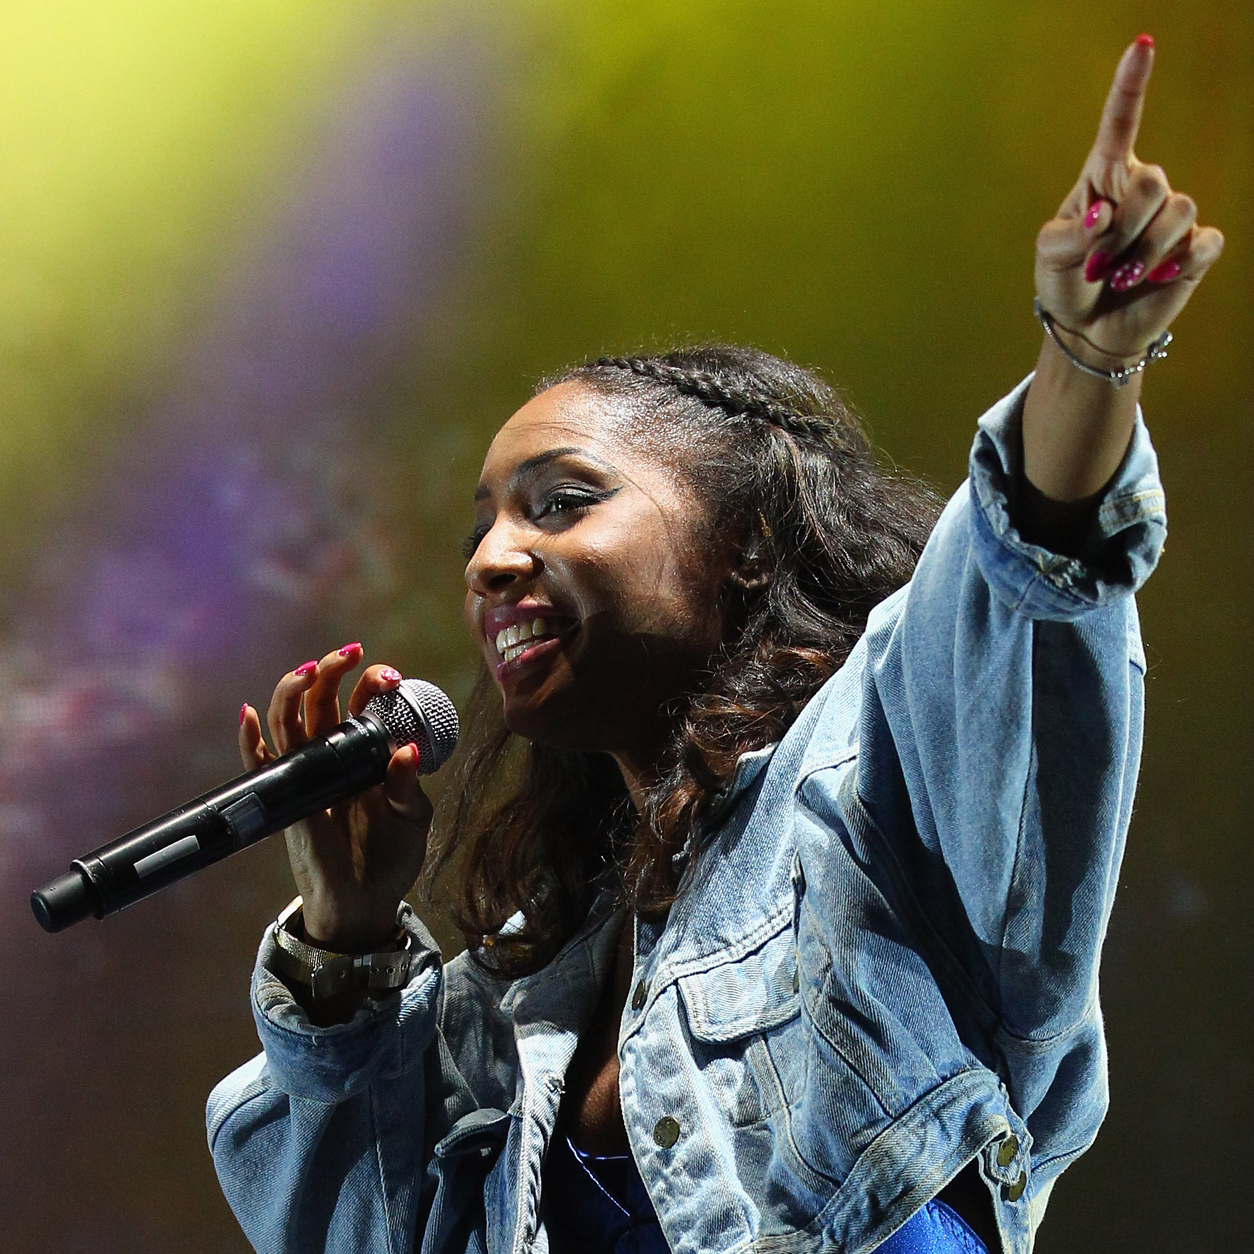 American singer Wynter Gordon performs live at the Clipsal 500, which is round one of the V8 Supercar Championship Series, at the Adelaide Street Circuit on March 2, 2012 in Adelaide, Australia.